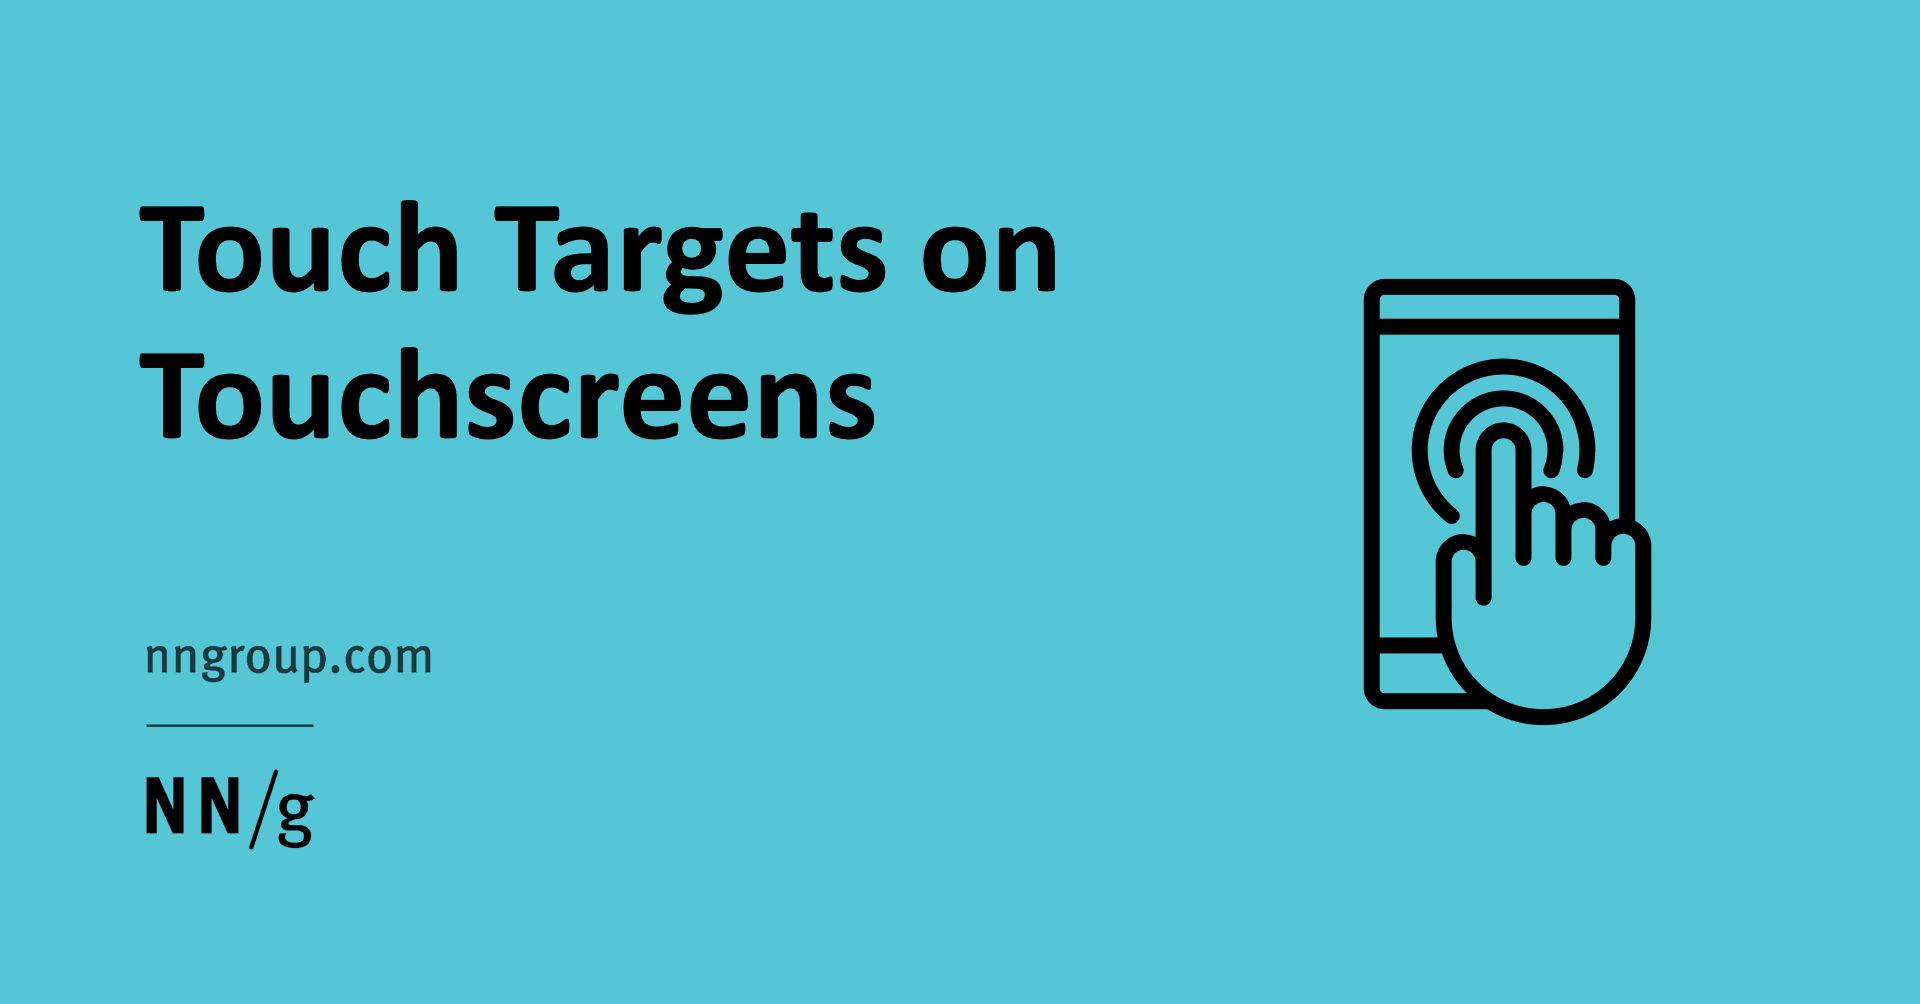 touch targets on touchscreens